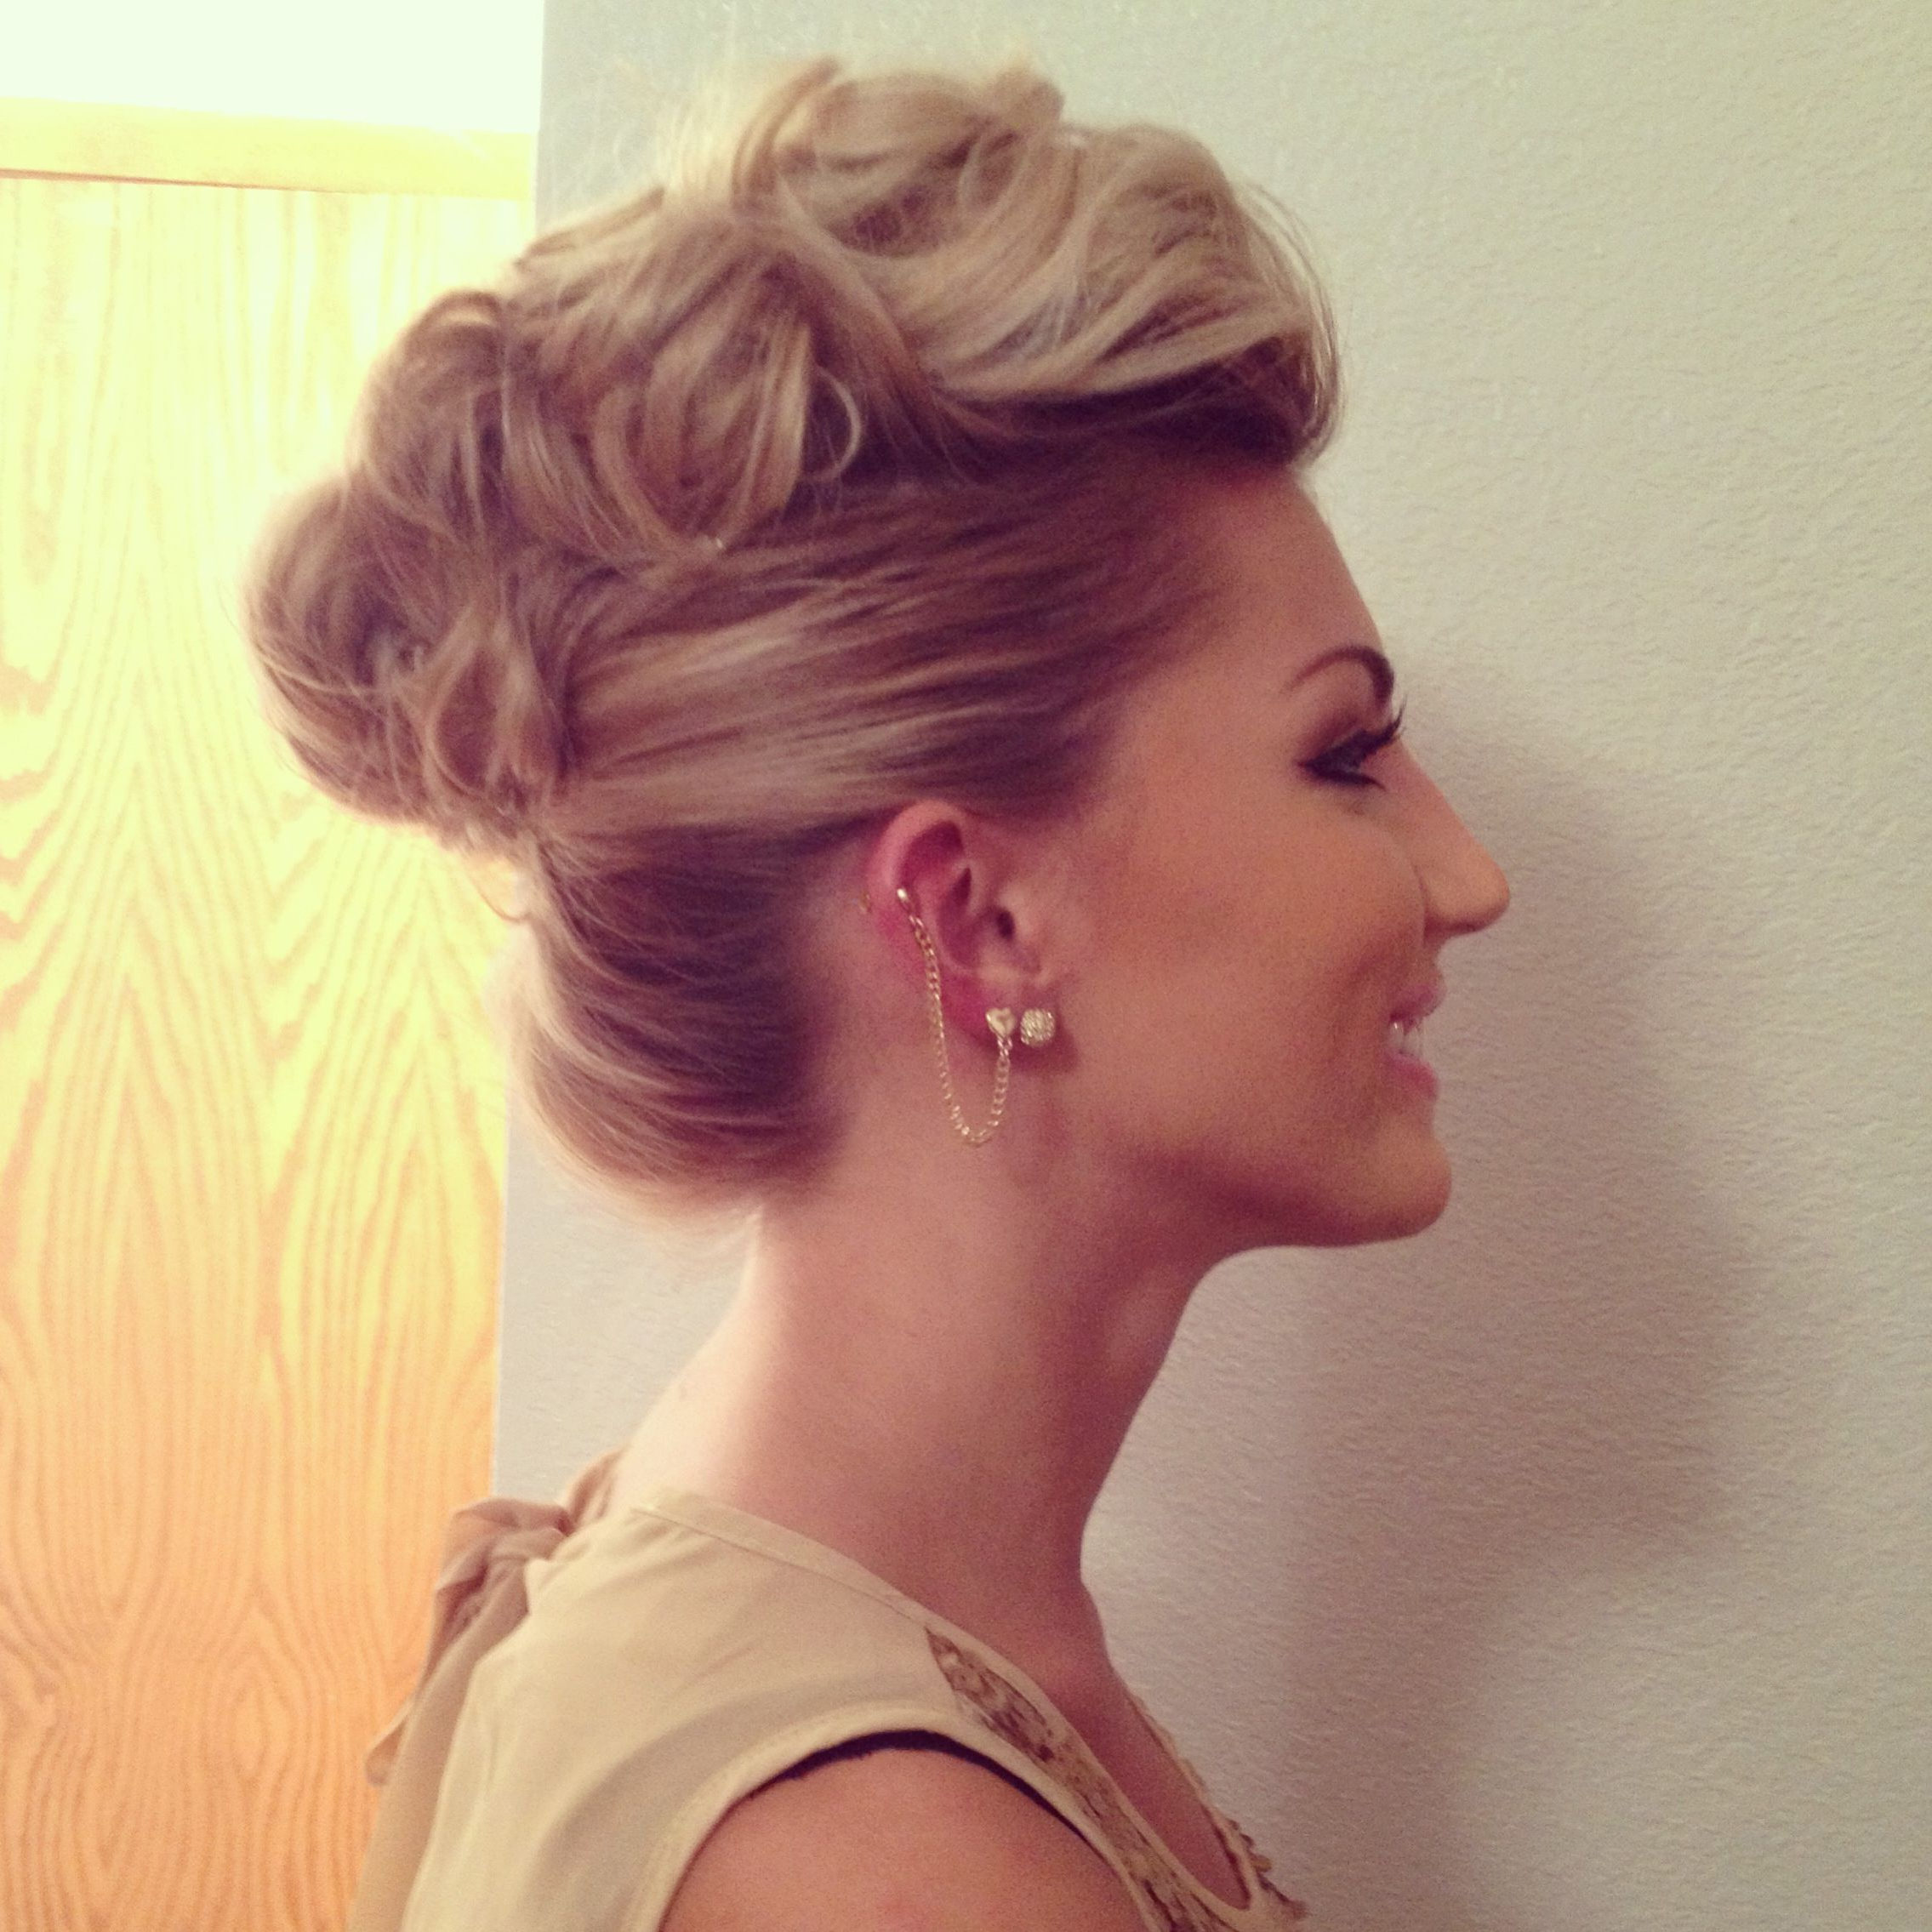 Hair Styles, Hair Pertaining To Most Recent Pompadour Bun Hairstyles For Wedding (View 1 of 20)